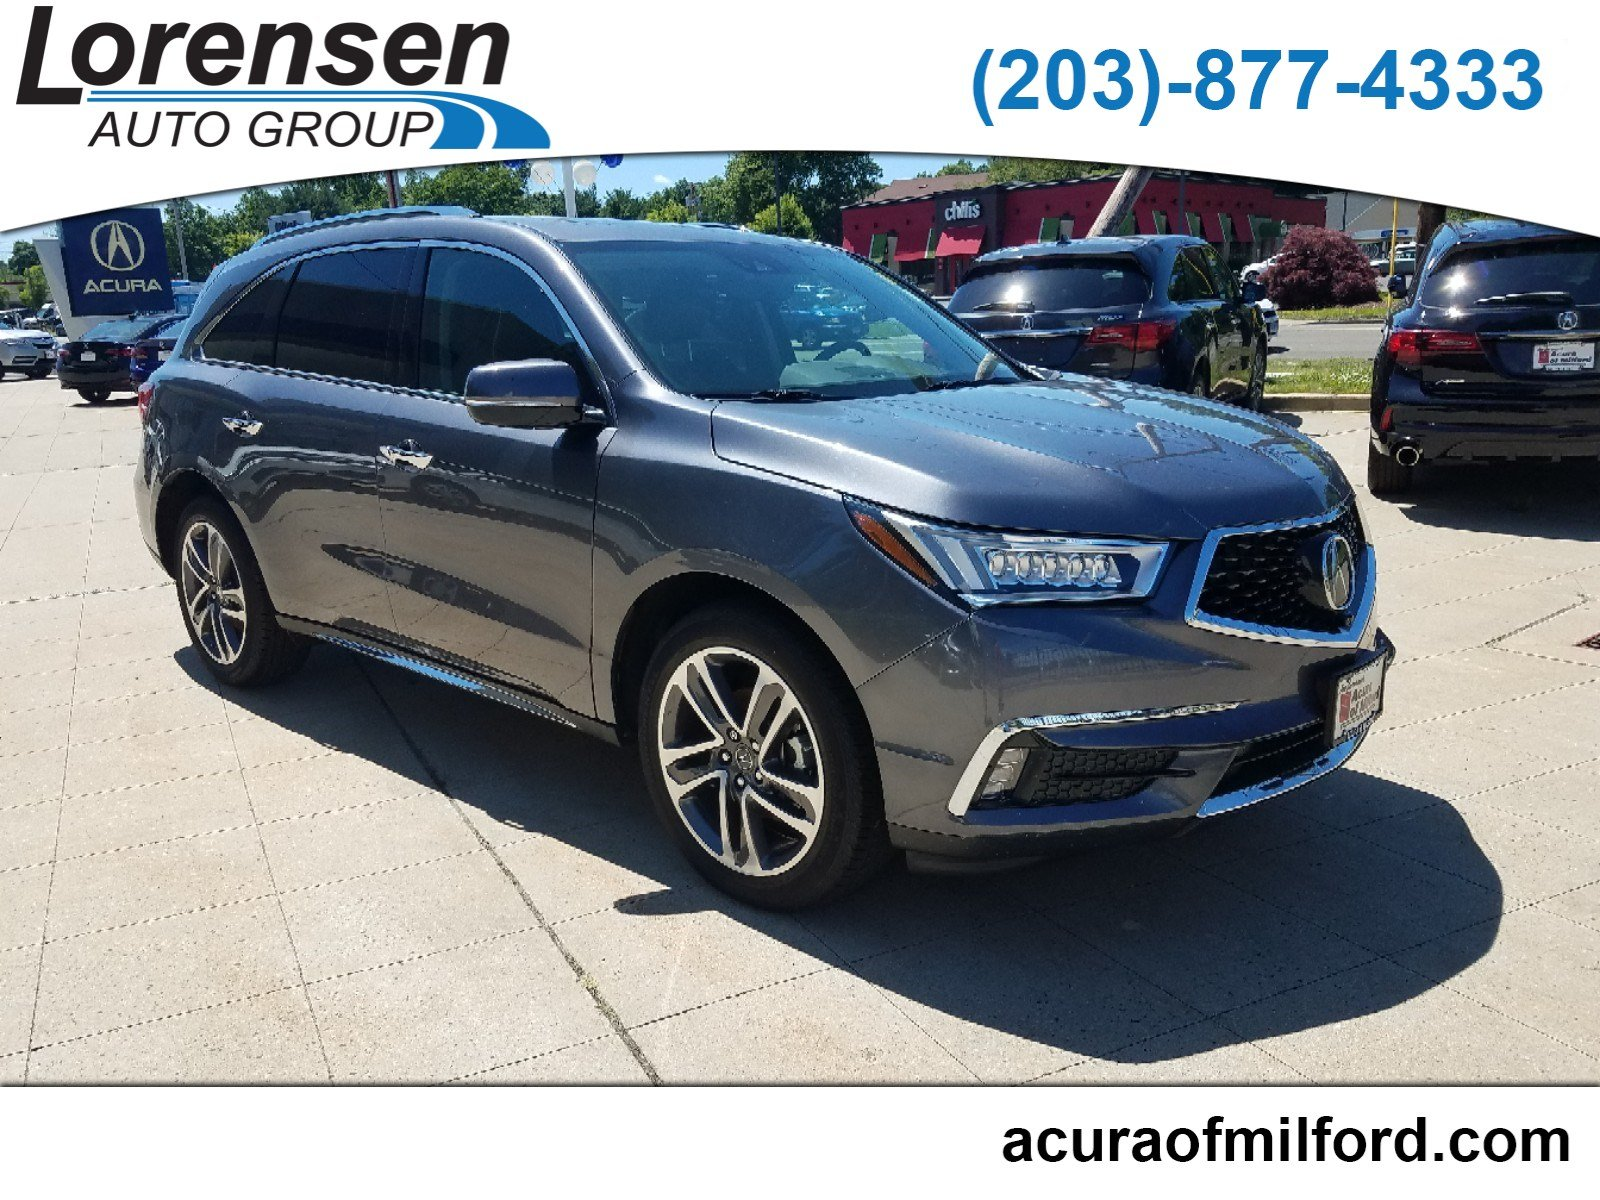 Certified Pre-Owned 2018 Acura MDX w/Advance Pkg